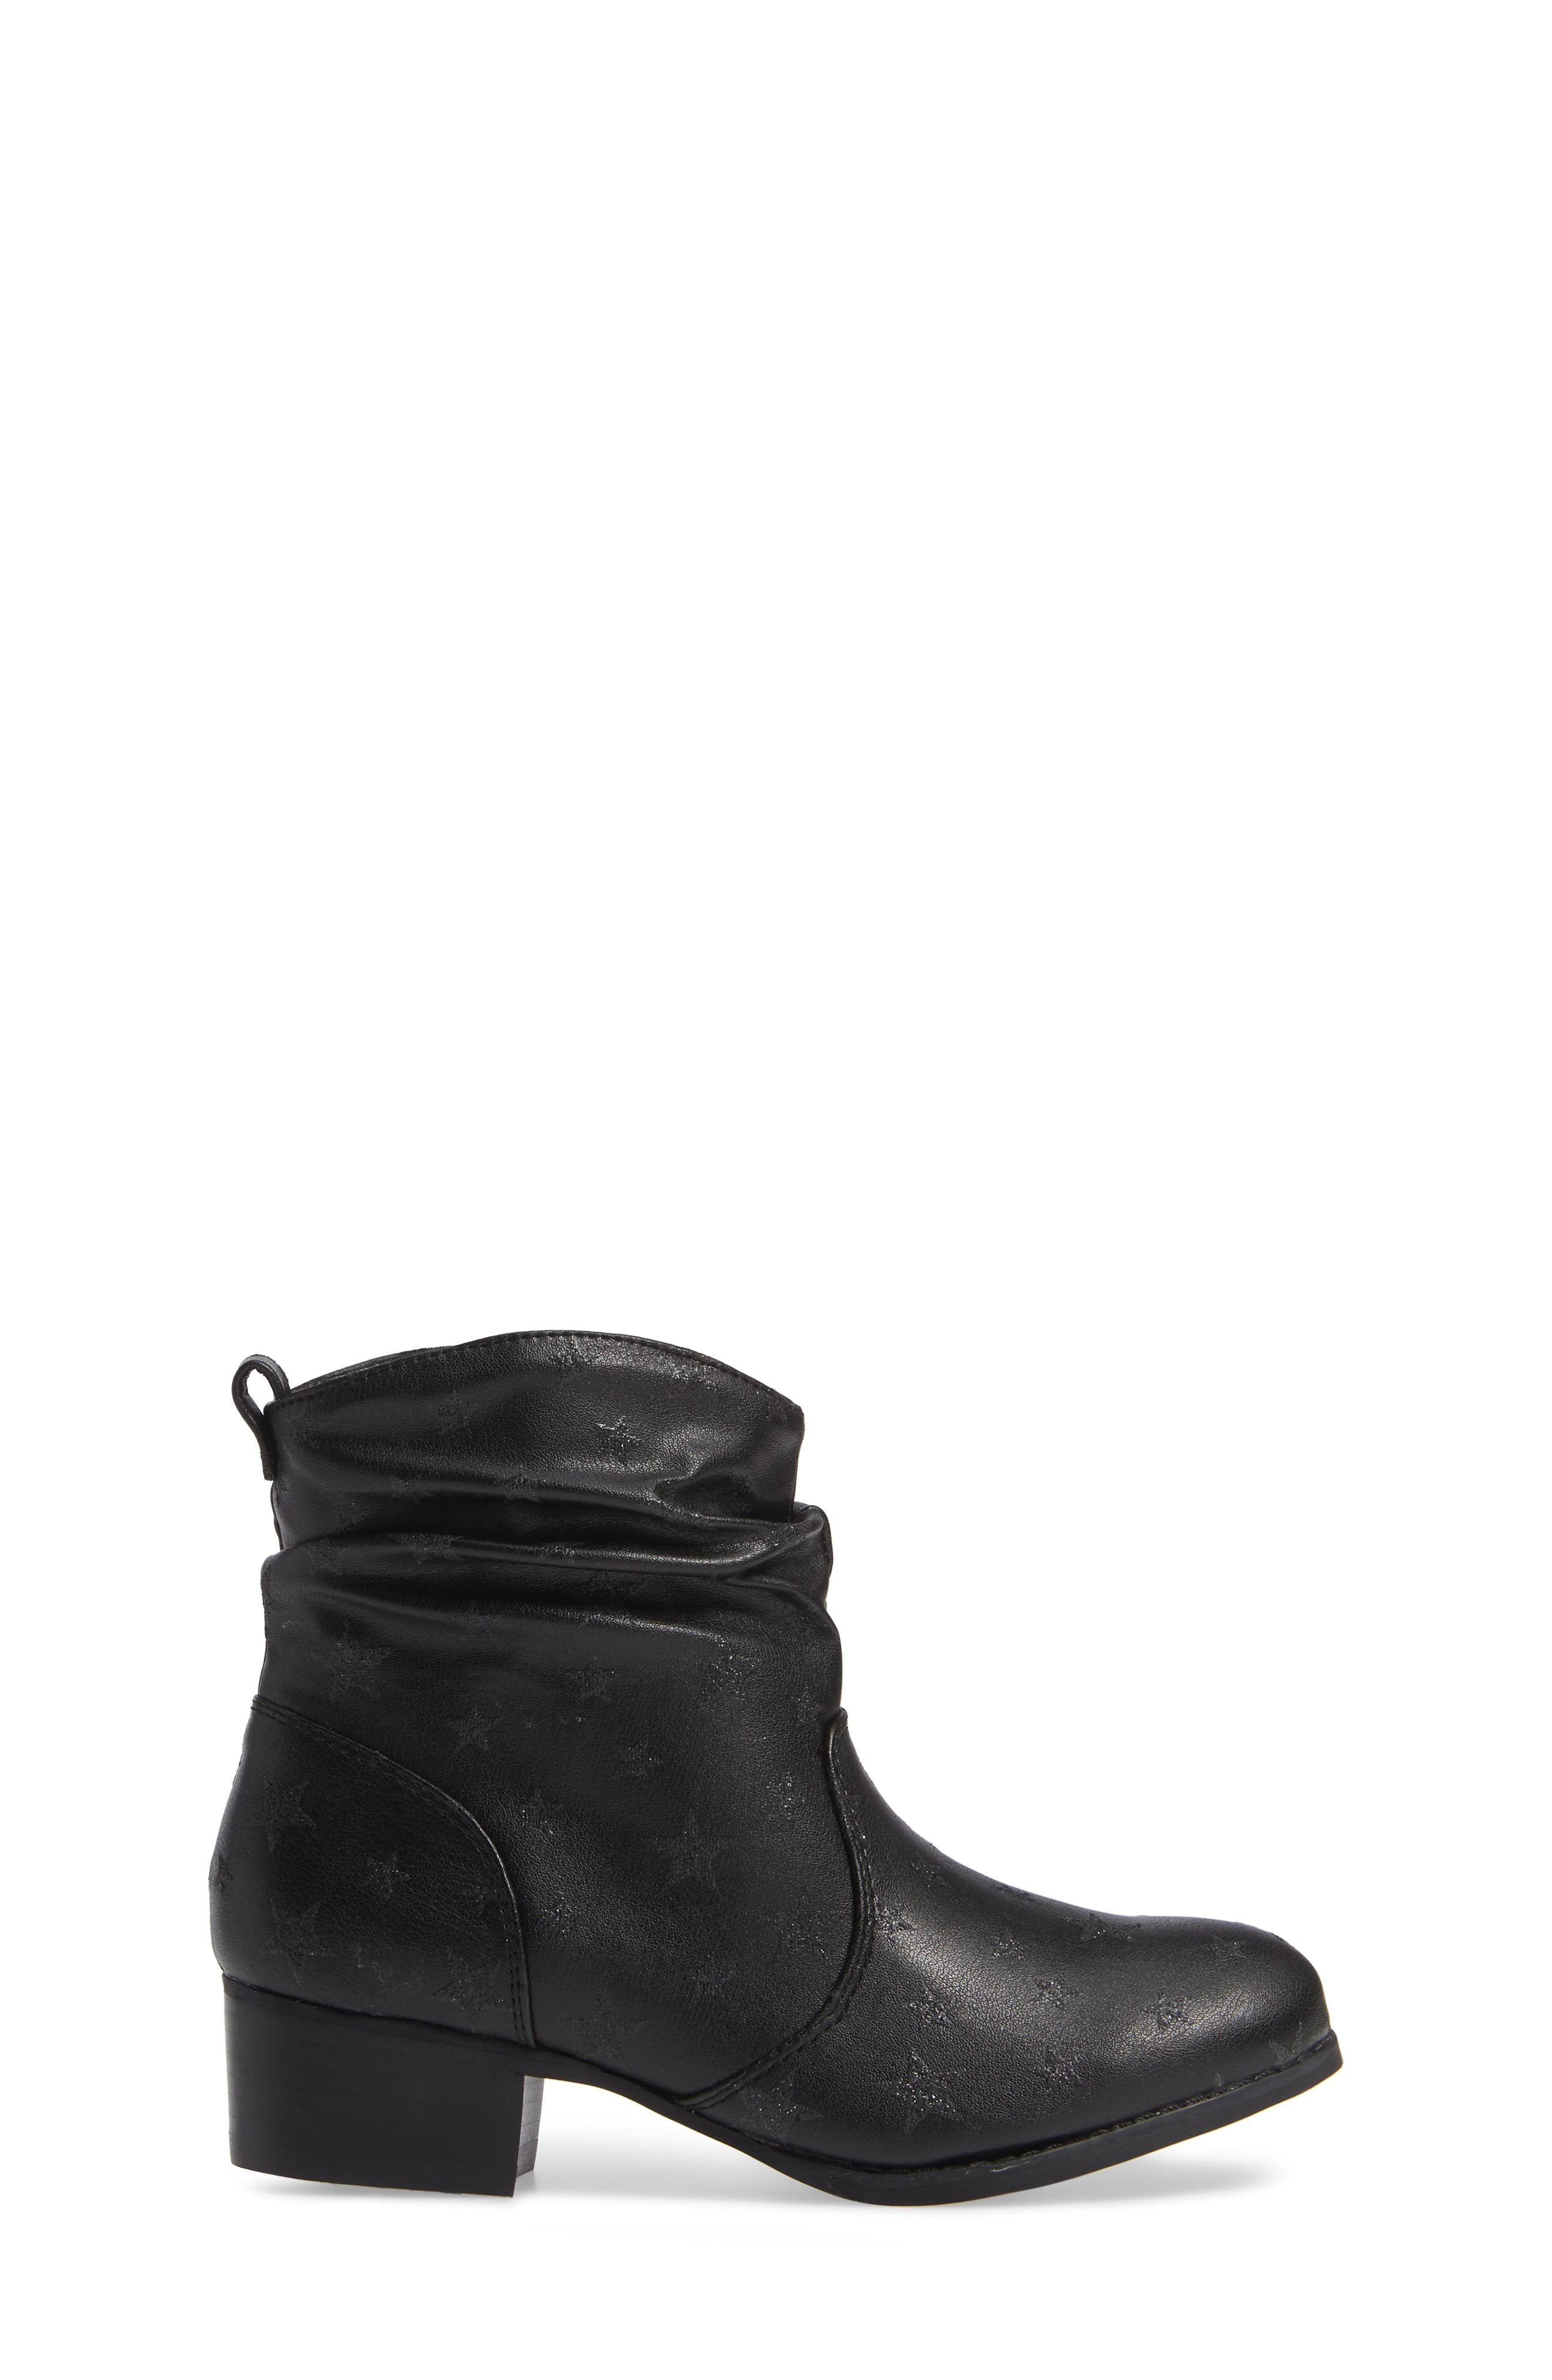 JCountry Slouch Bootie,                             Alternate thumbnail 3, color,                             BLACK